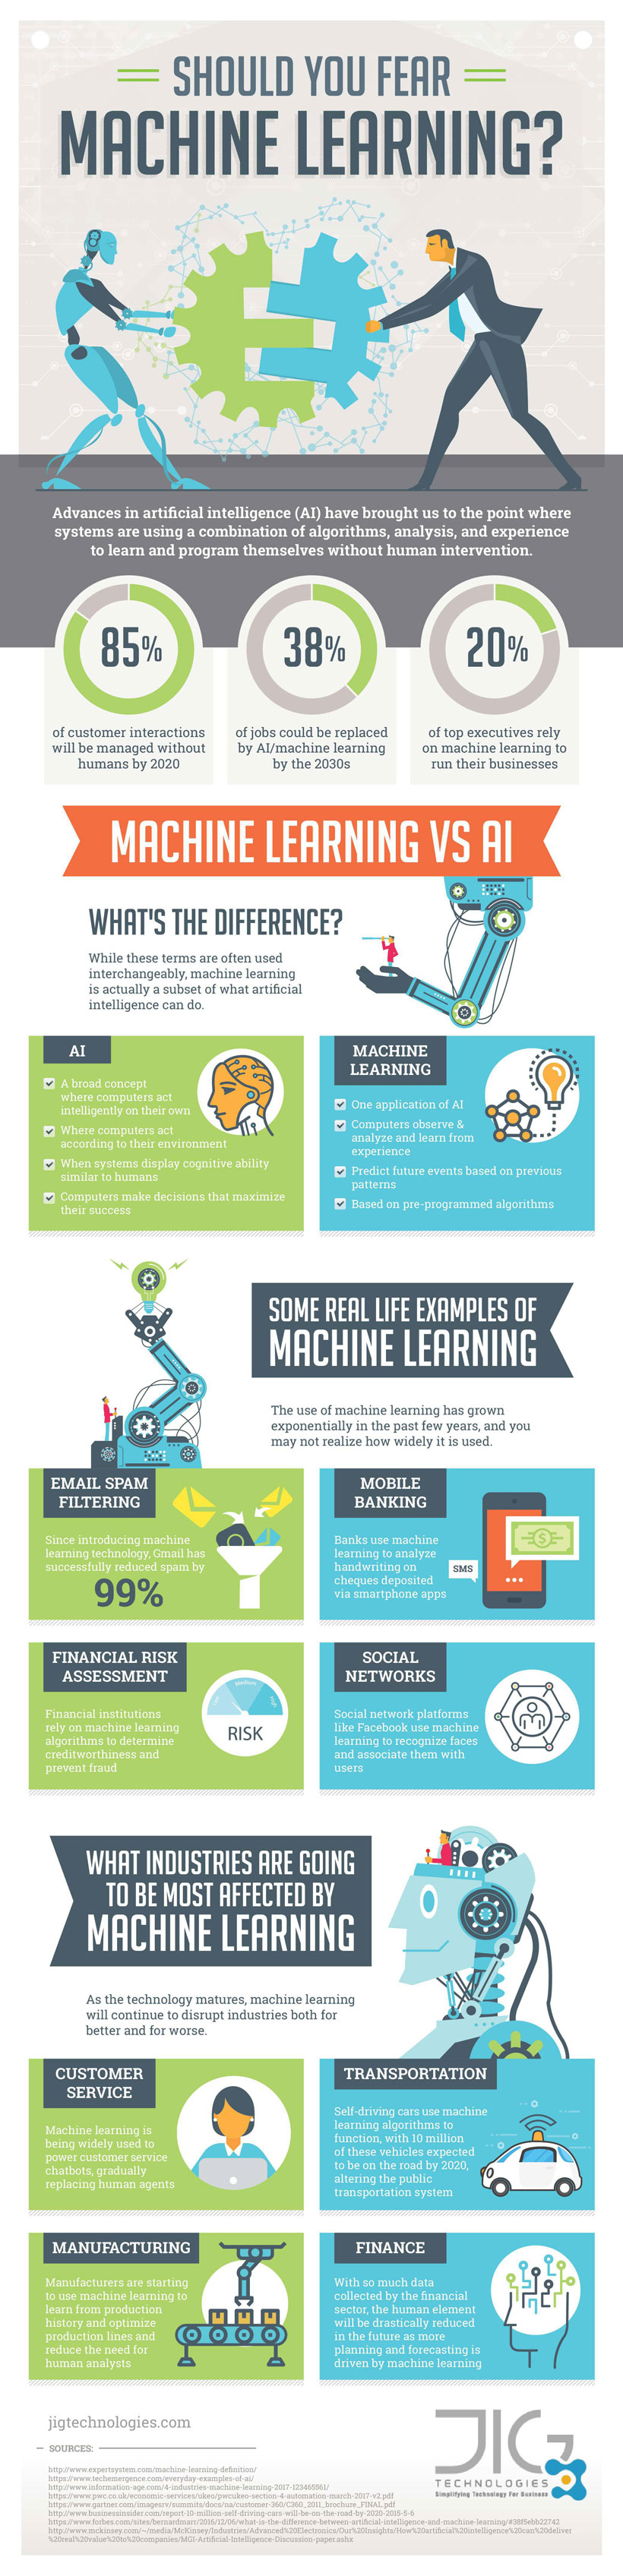 Machine-learning-infographic-galleryr